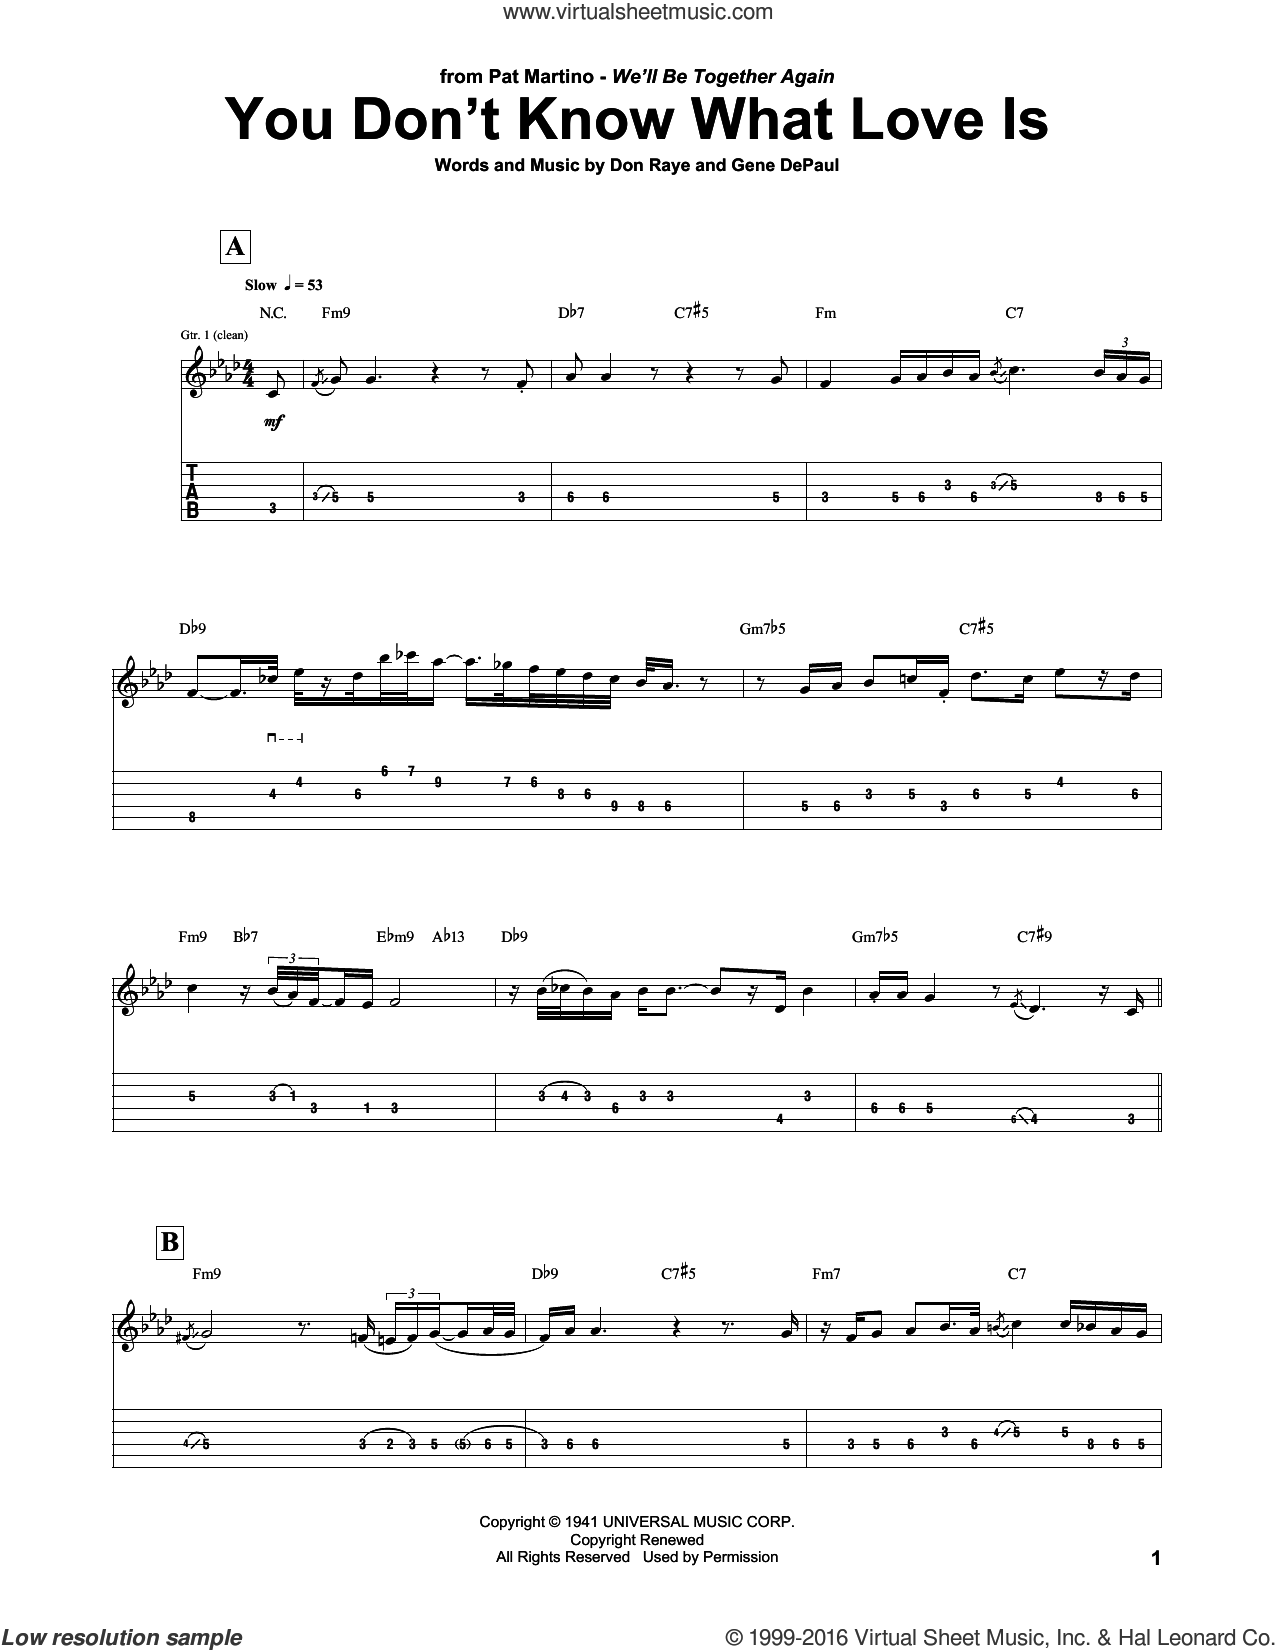 You Don't Know What Love Is sheet music for guitar (tablature) by Pat Martino, Carol Bruce, Don Raye and Gene DePaul, intermediate skill level